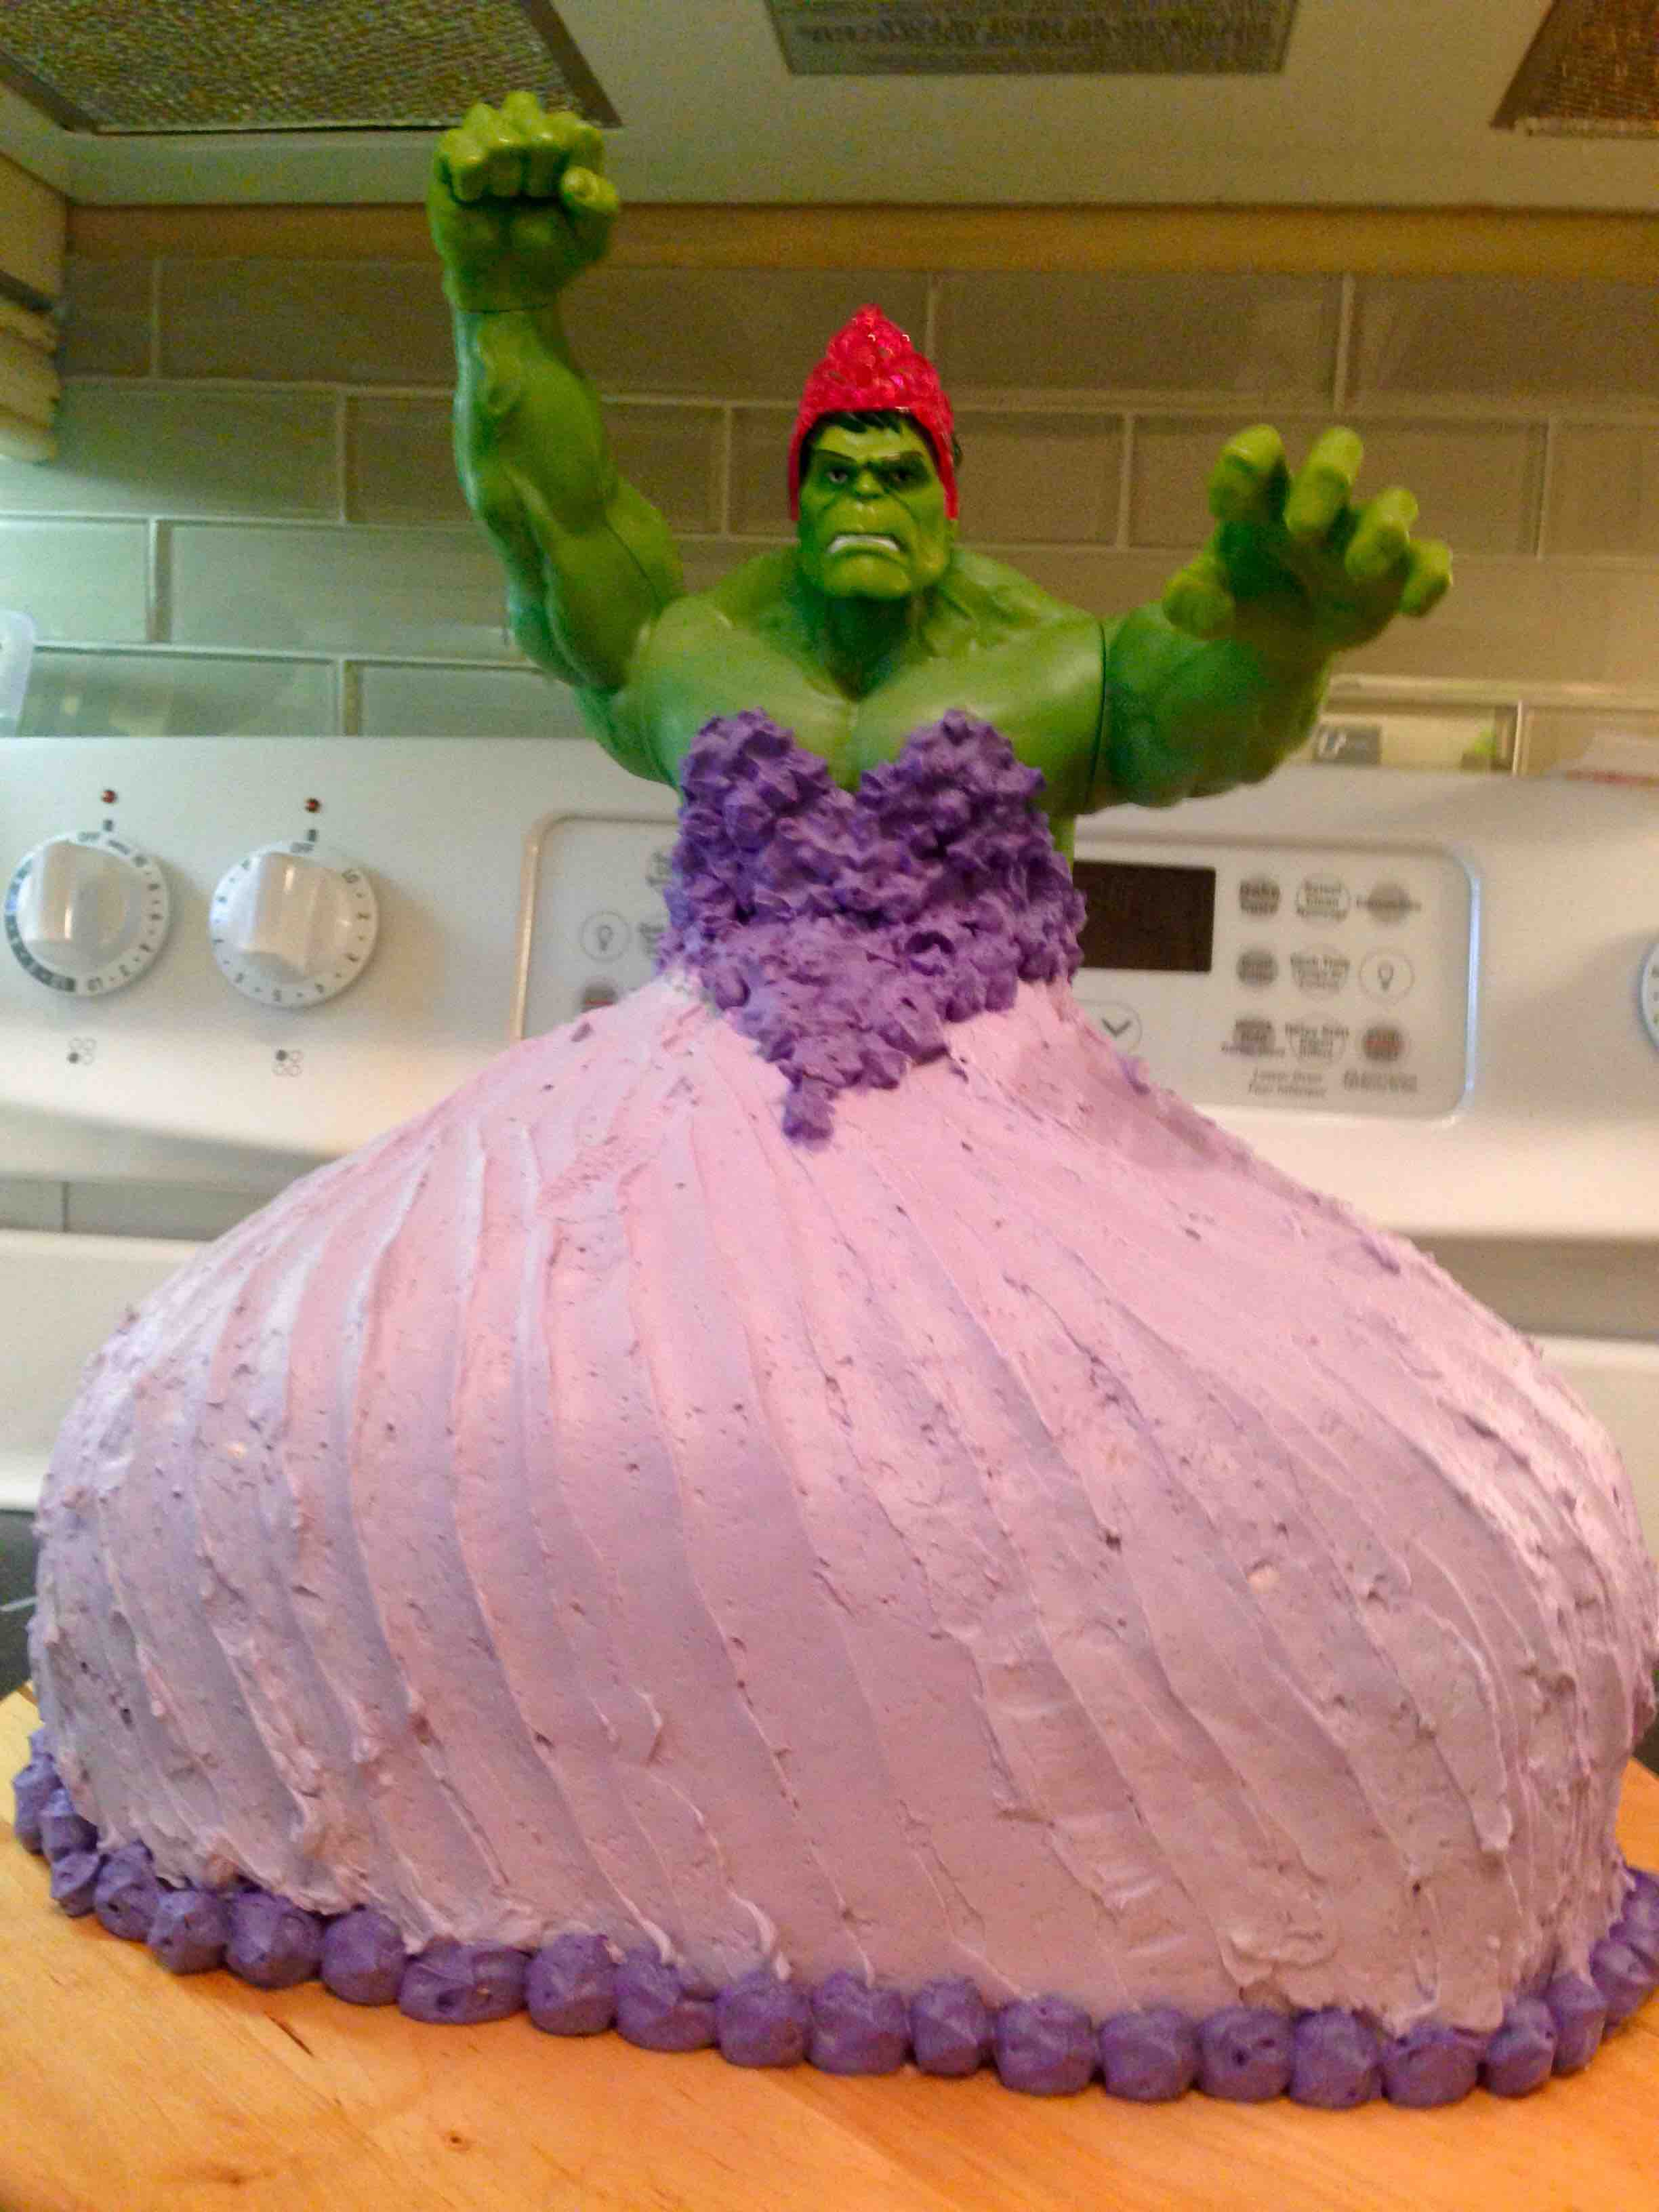 //cdn.someecards.com/posts/hulkprincesscake-0s2tzW.jpg